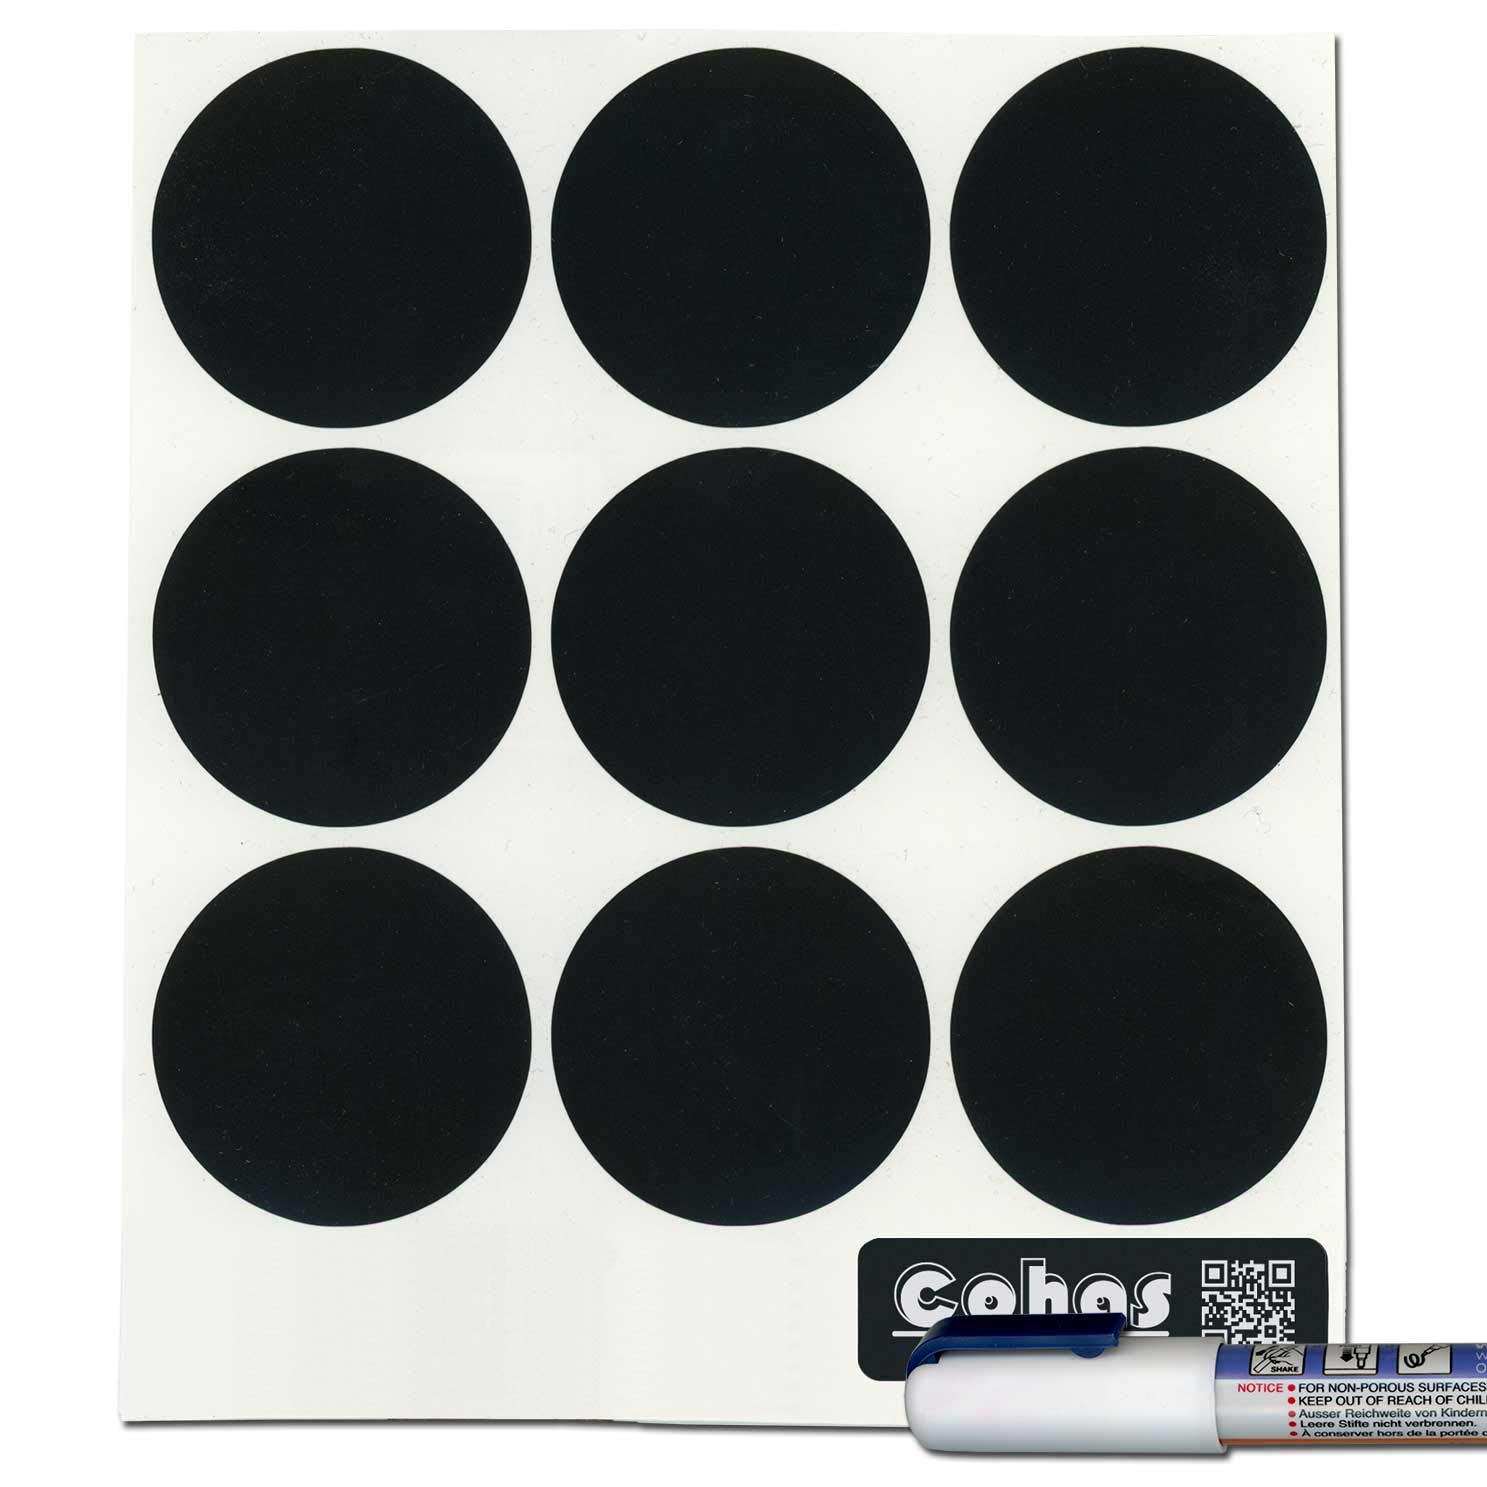 Cohas Chalkboard Labels in 2 Inch Round Shape for Canning Jars Includes Liquid Chalk Marker and 27 Labels, Extra Fine Tip, White Marker